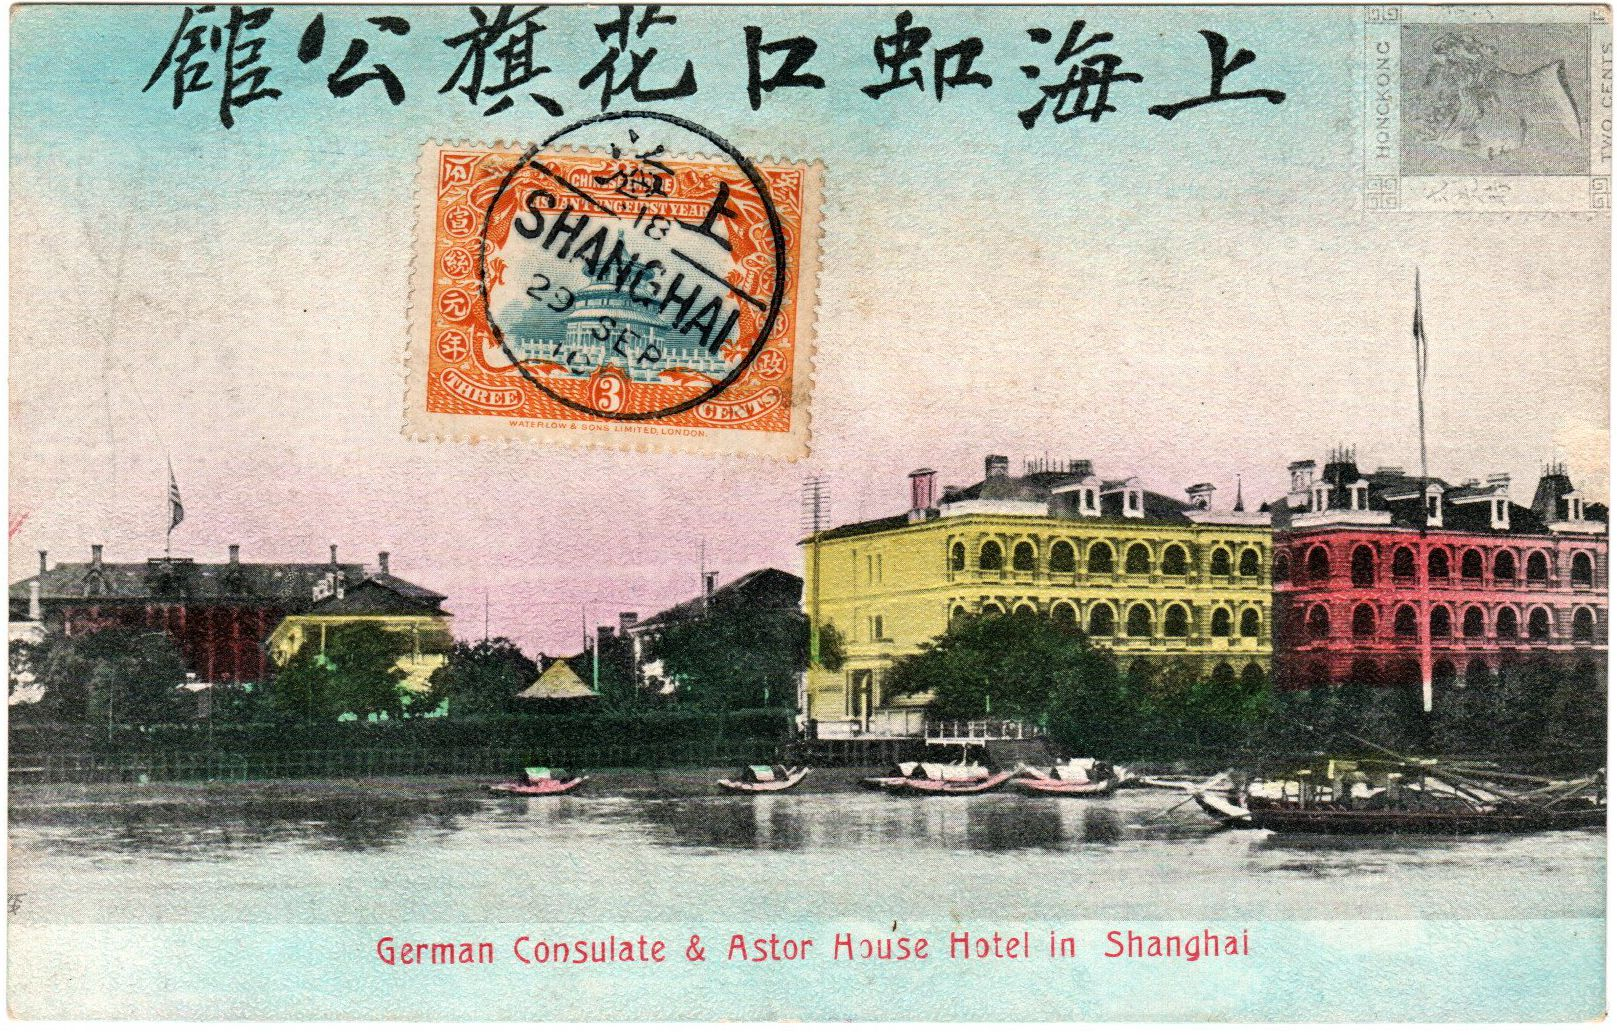 M1400, Shanghai Old Post Card, German Consulate & Astor House Hotel, 1910